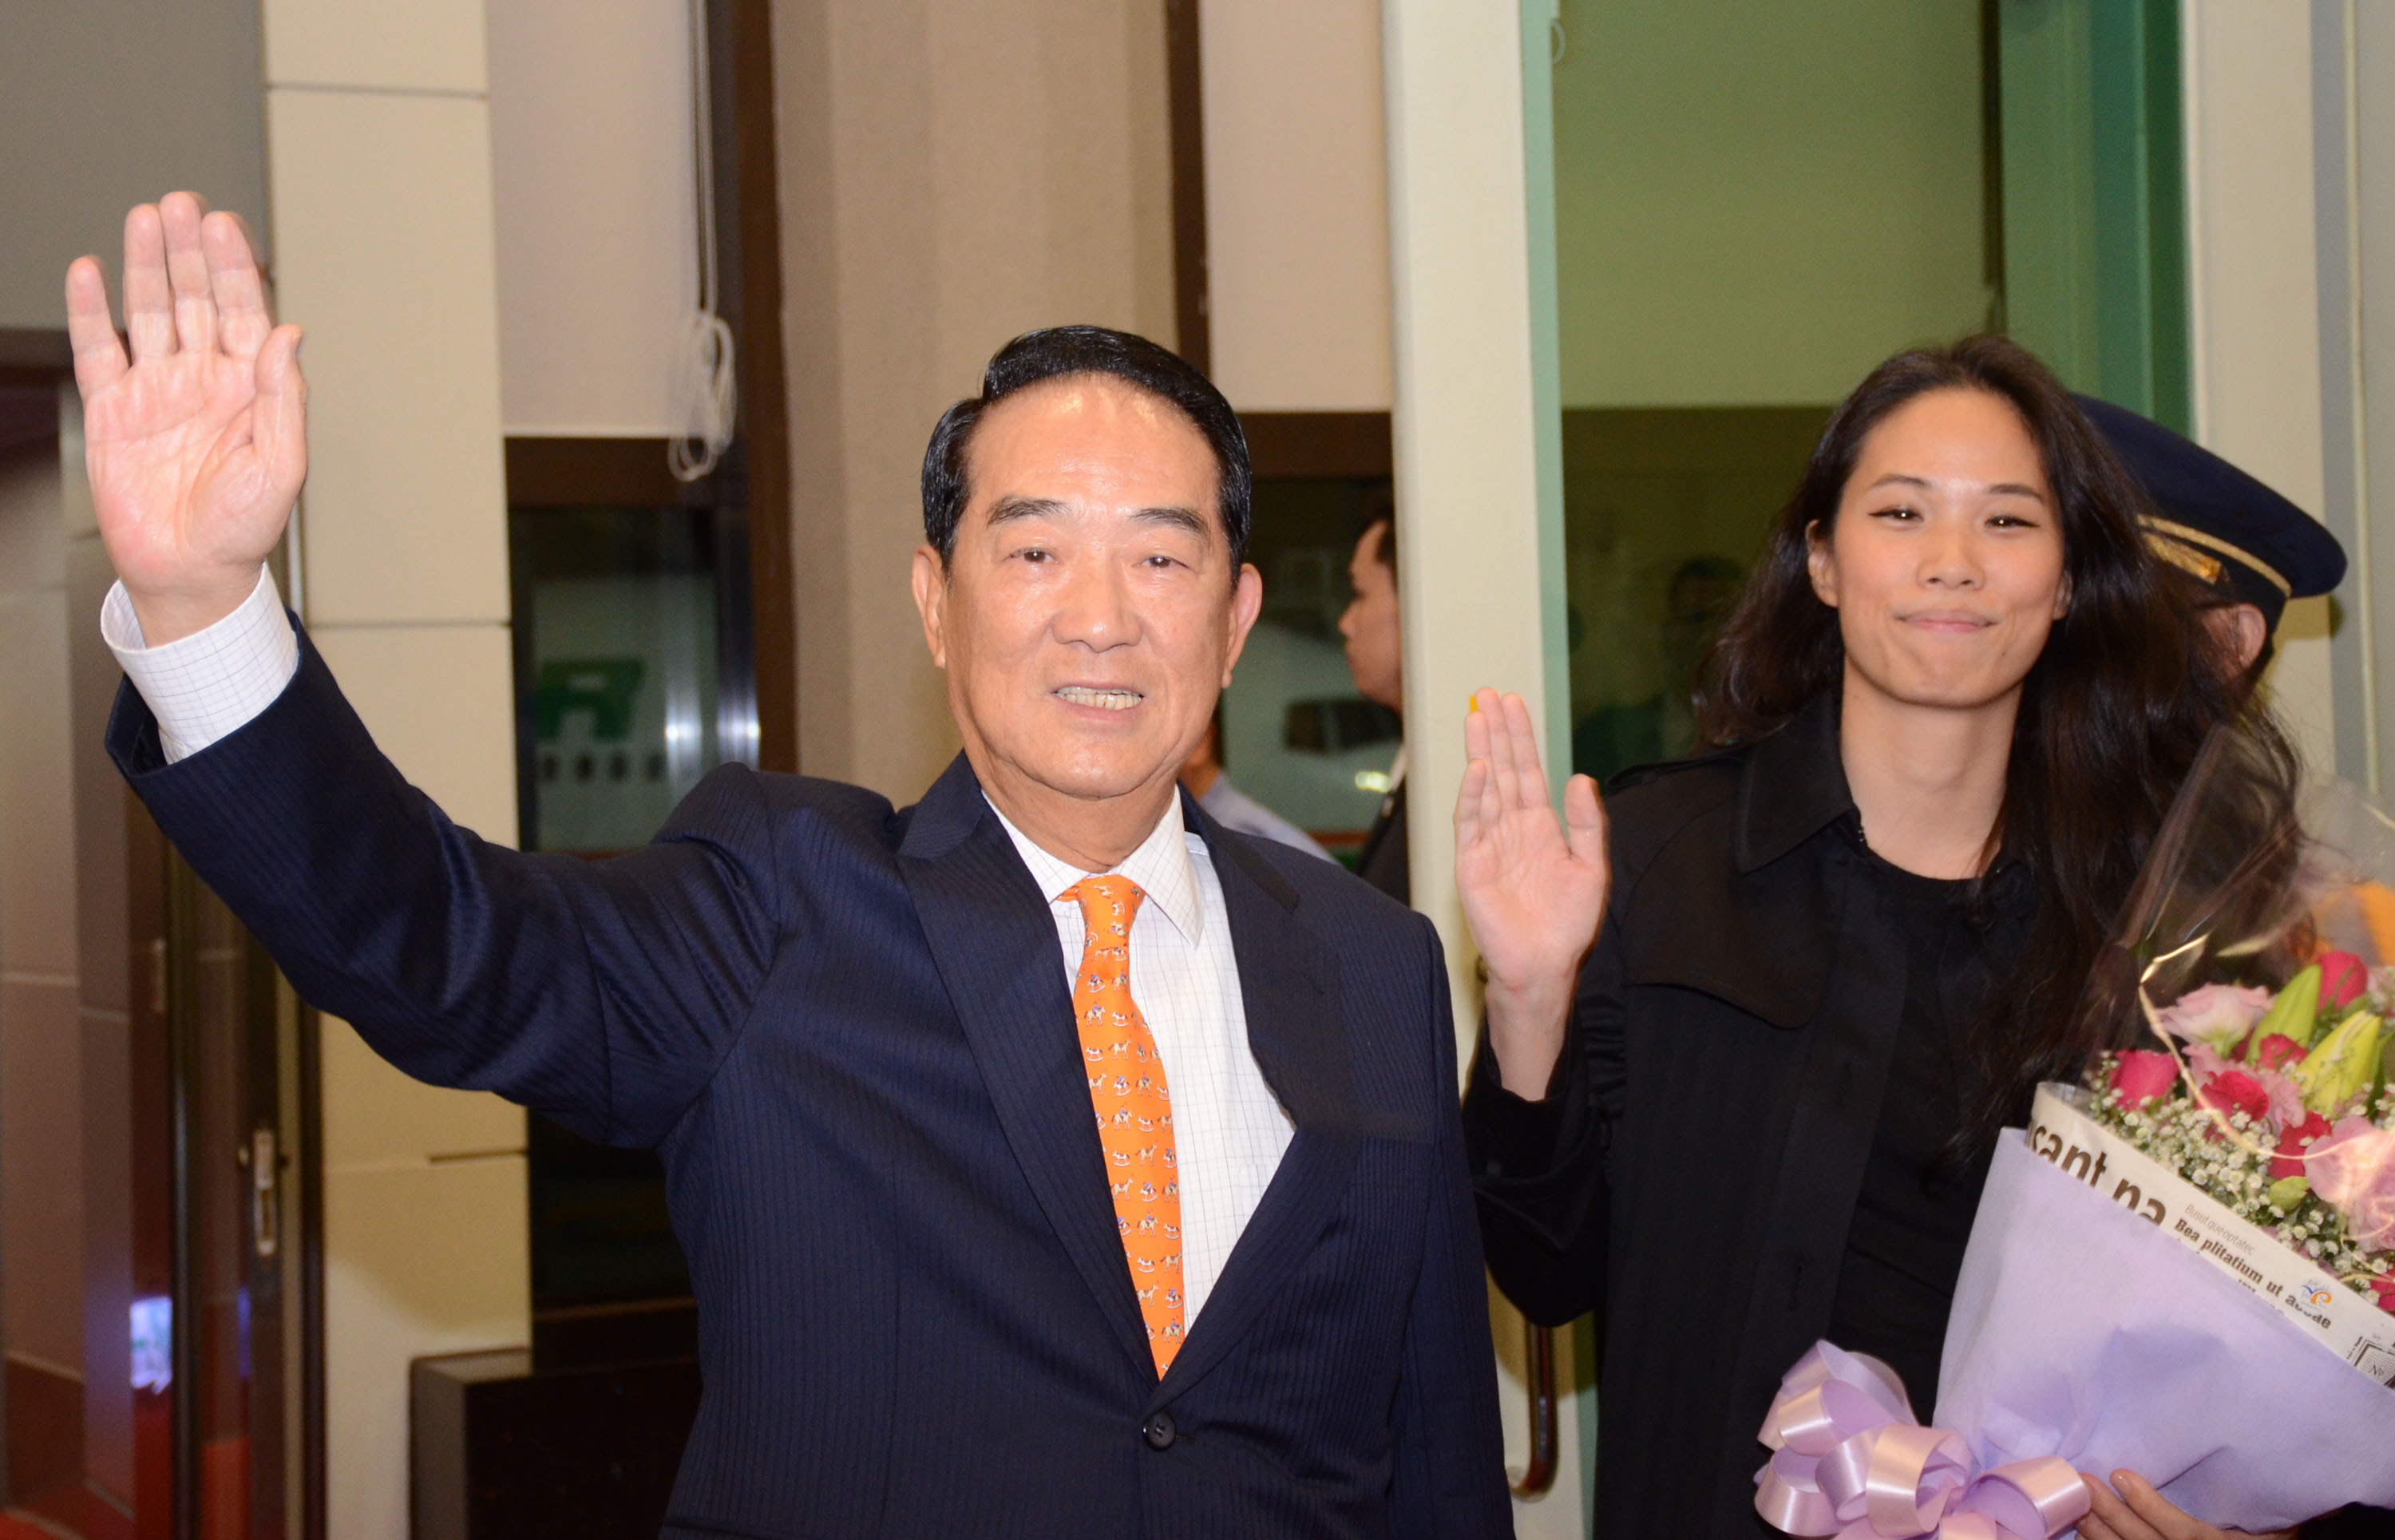 James Soong returning from the 2016 APEC summit with his daughter.